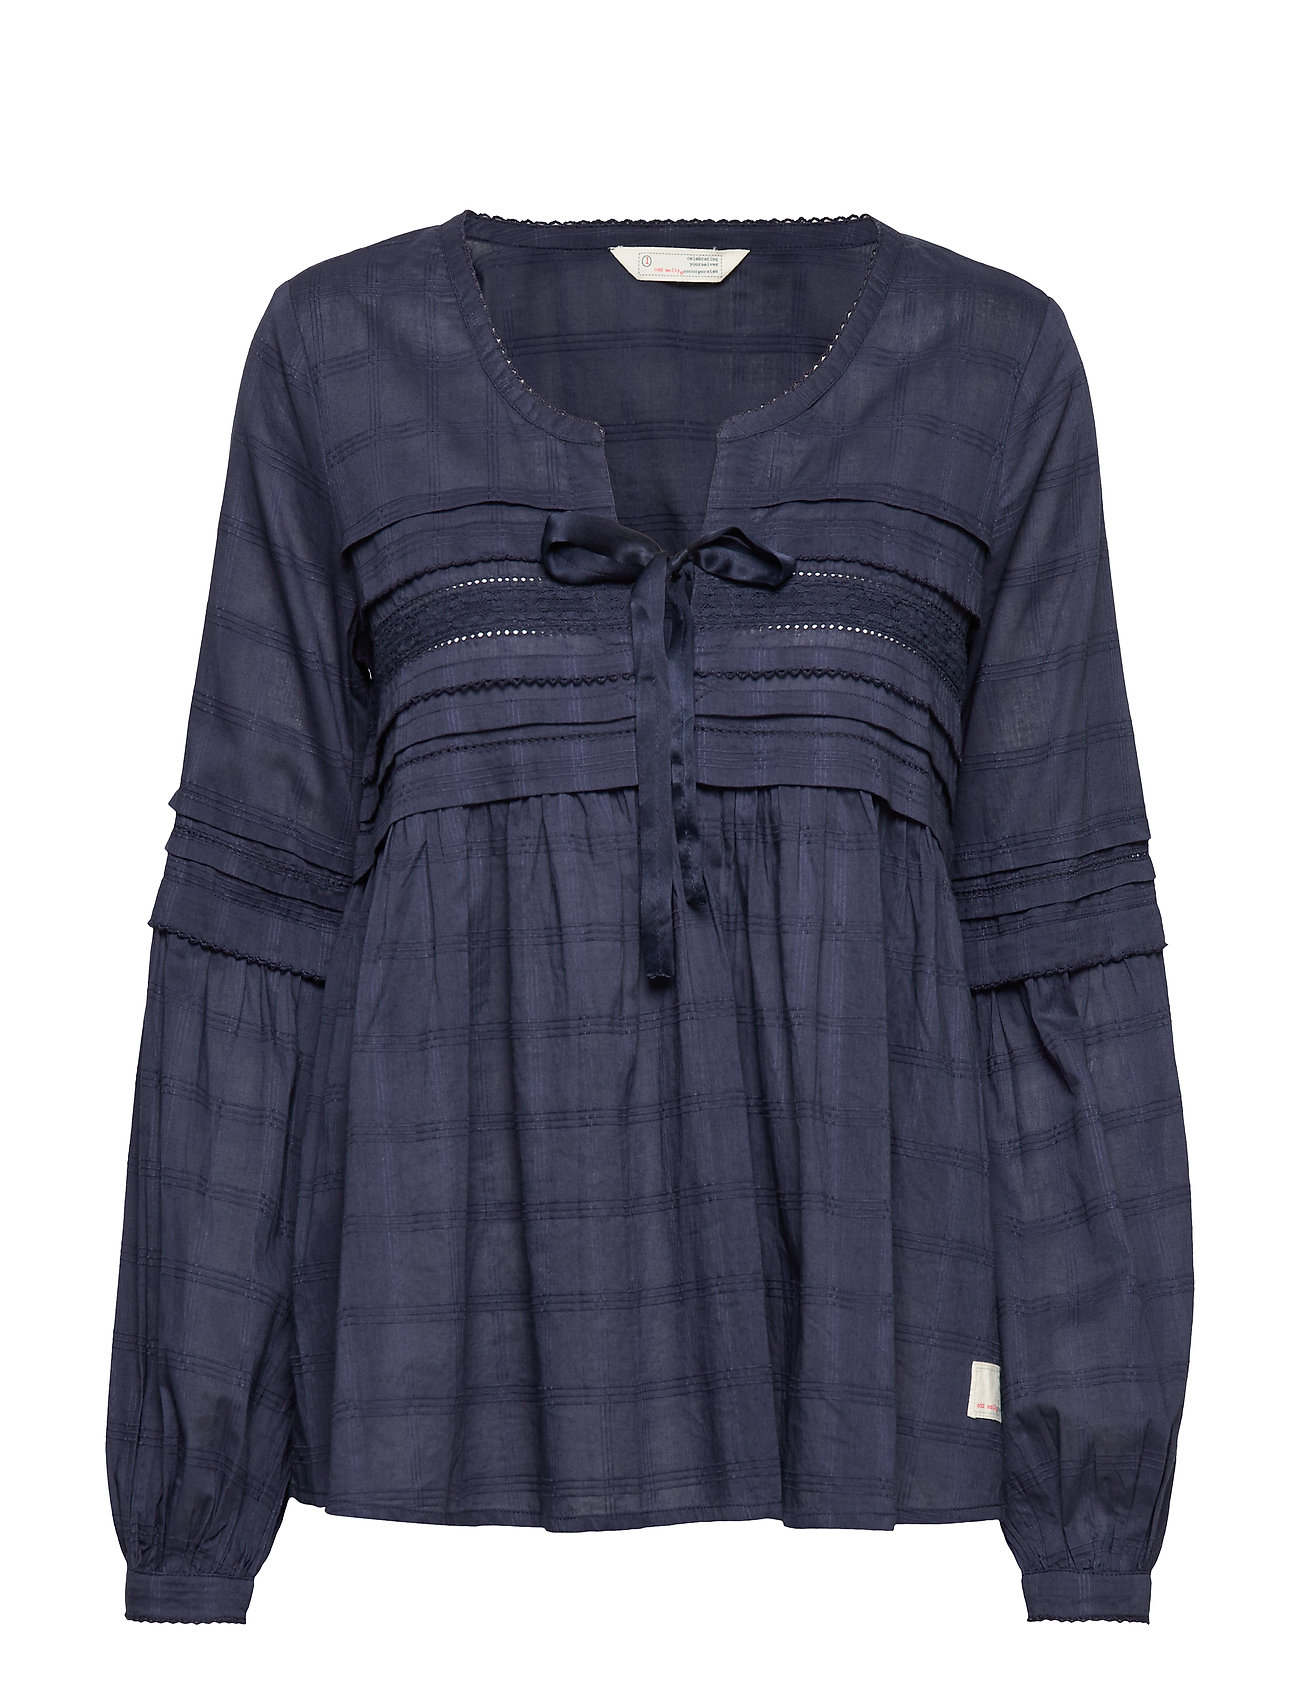 ODD MOLLY Ready To Go Blouse - DARK BLUE